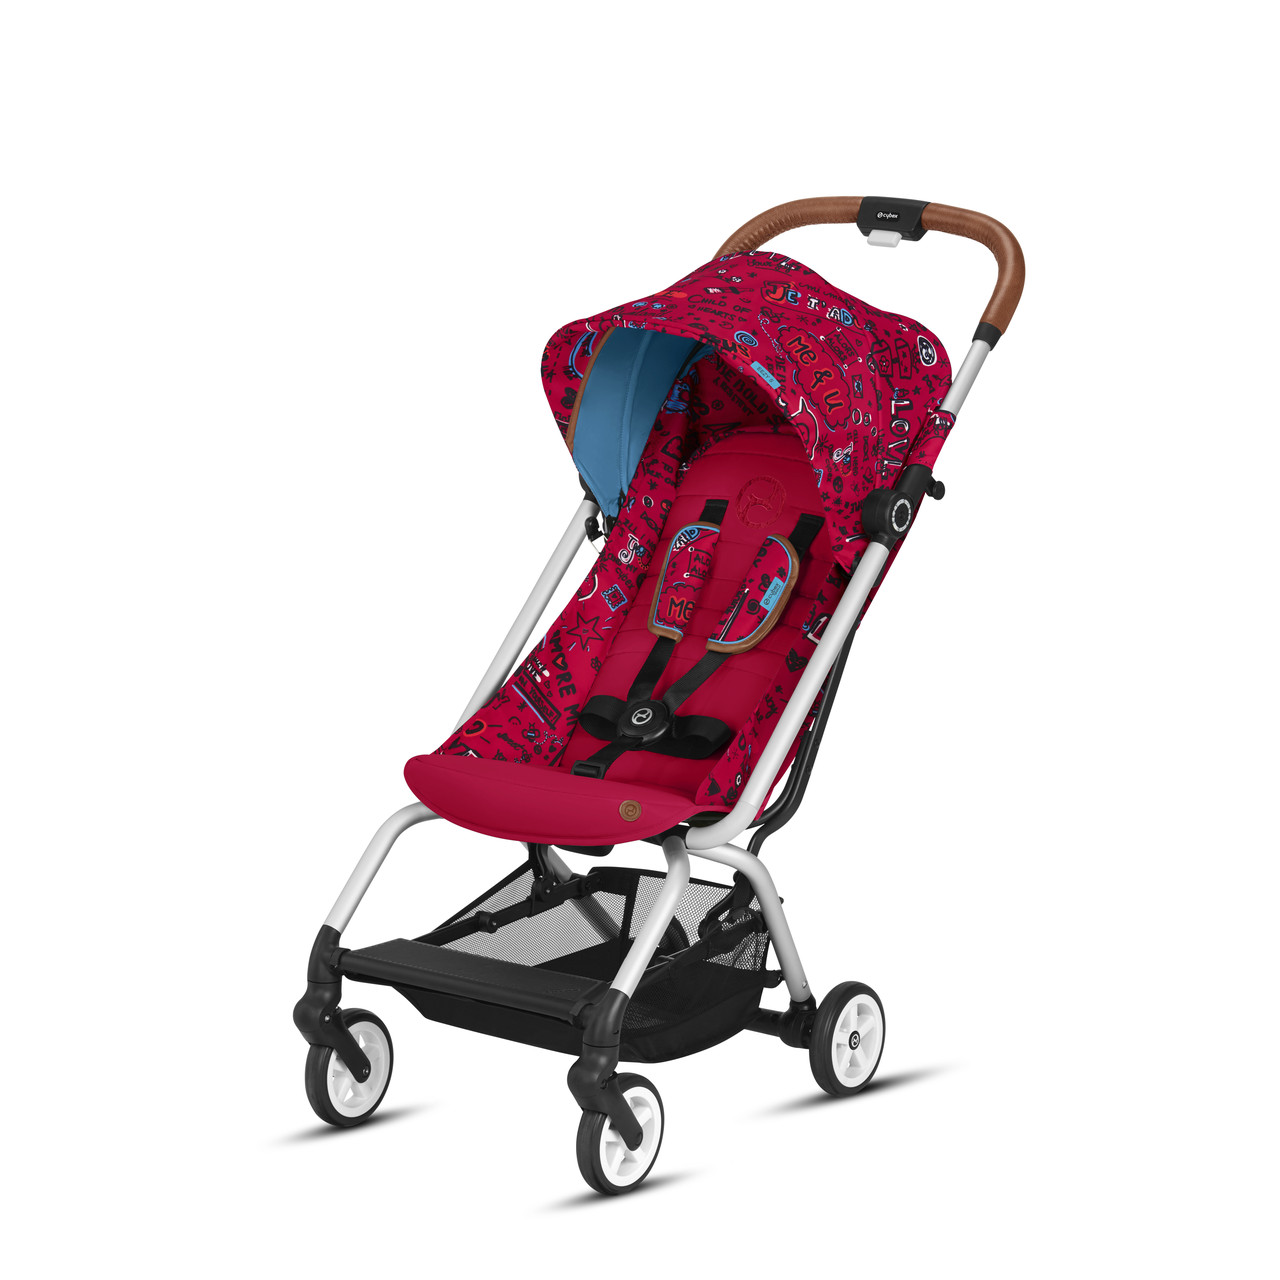 Cybex - Прогулочная коляска Eezy S Values for life, цвет Love red